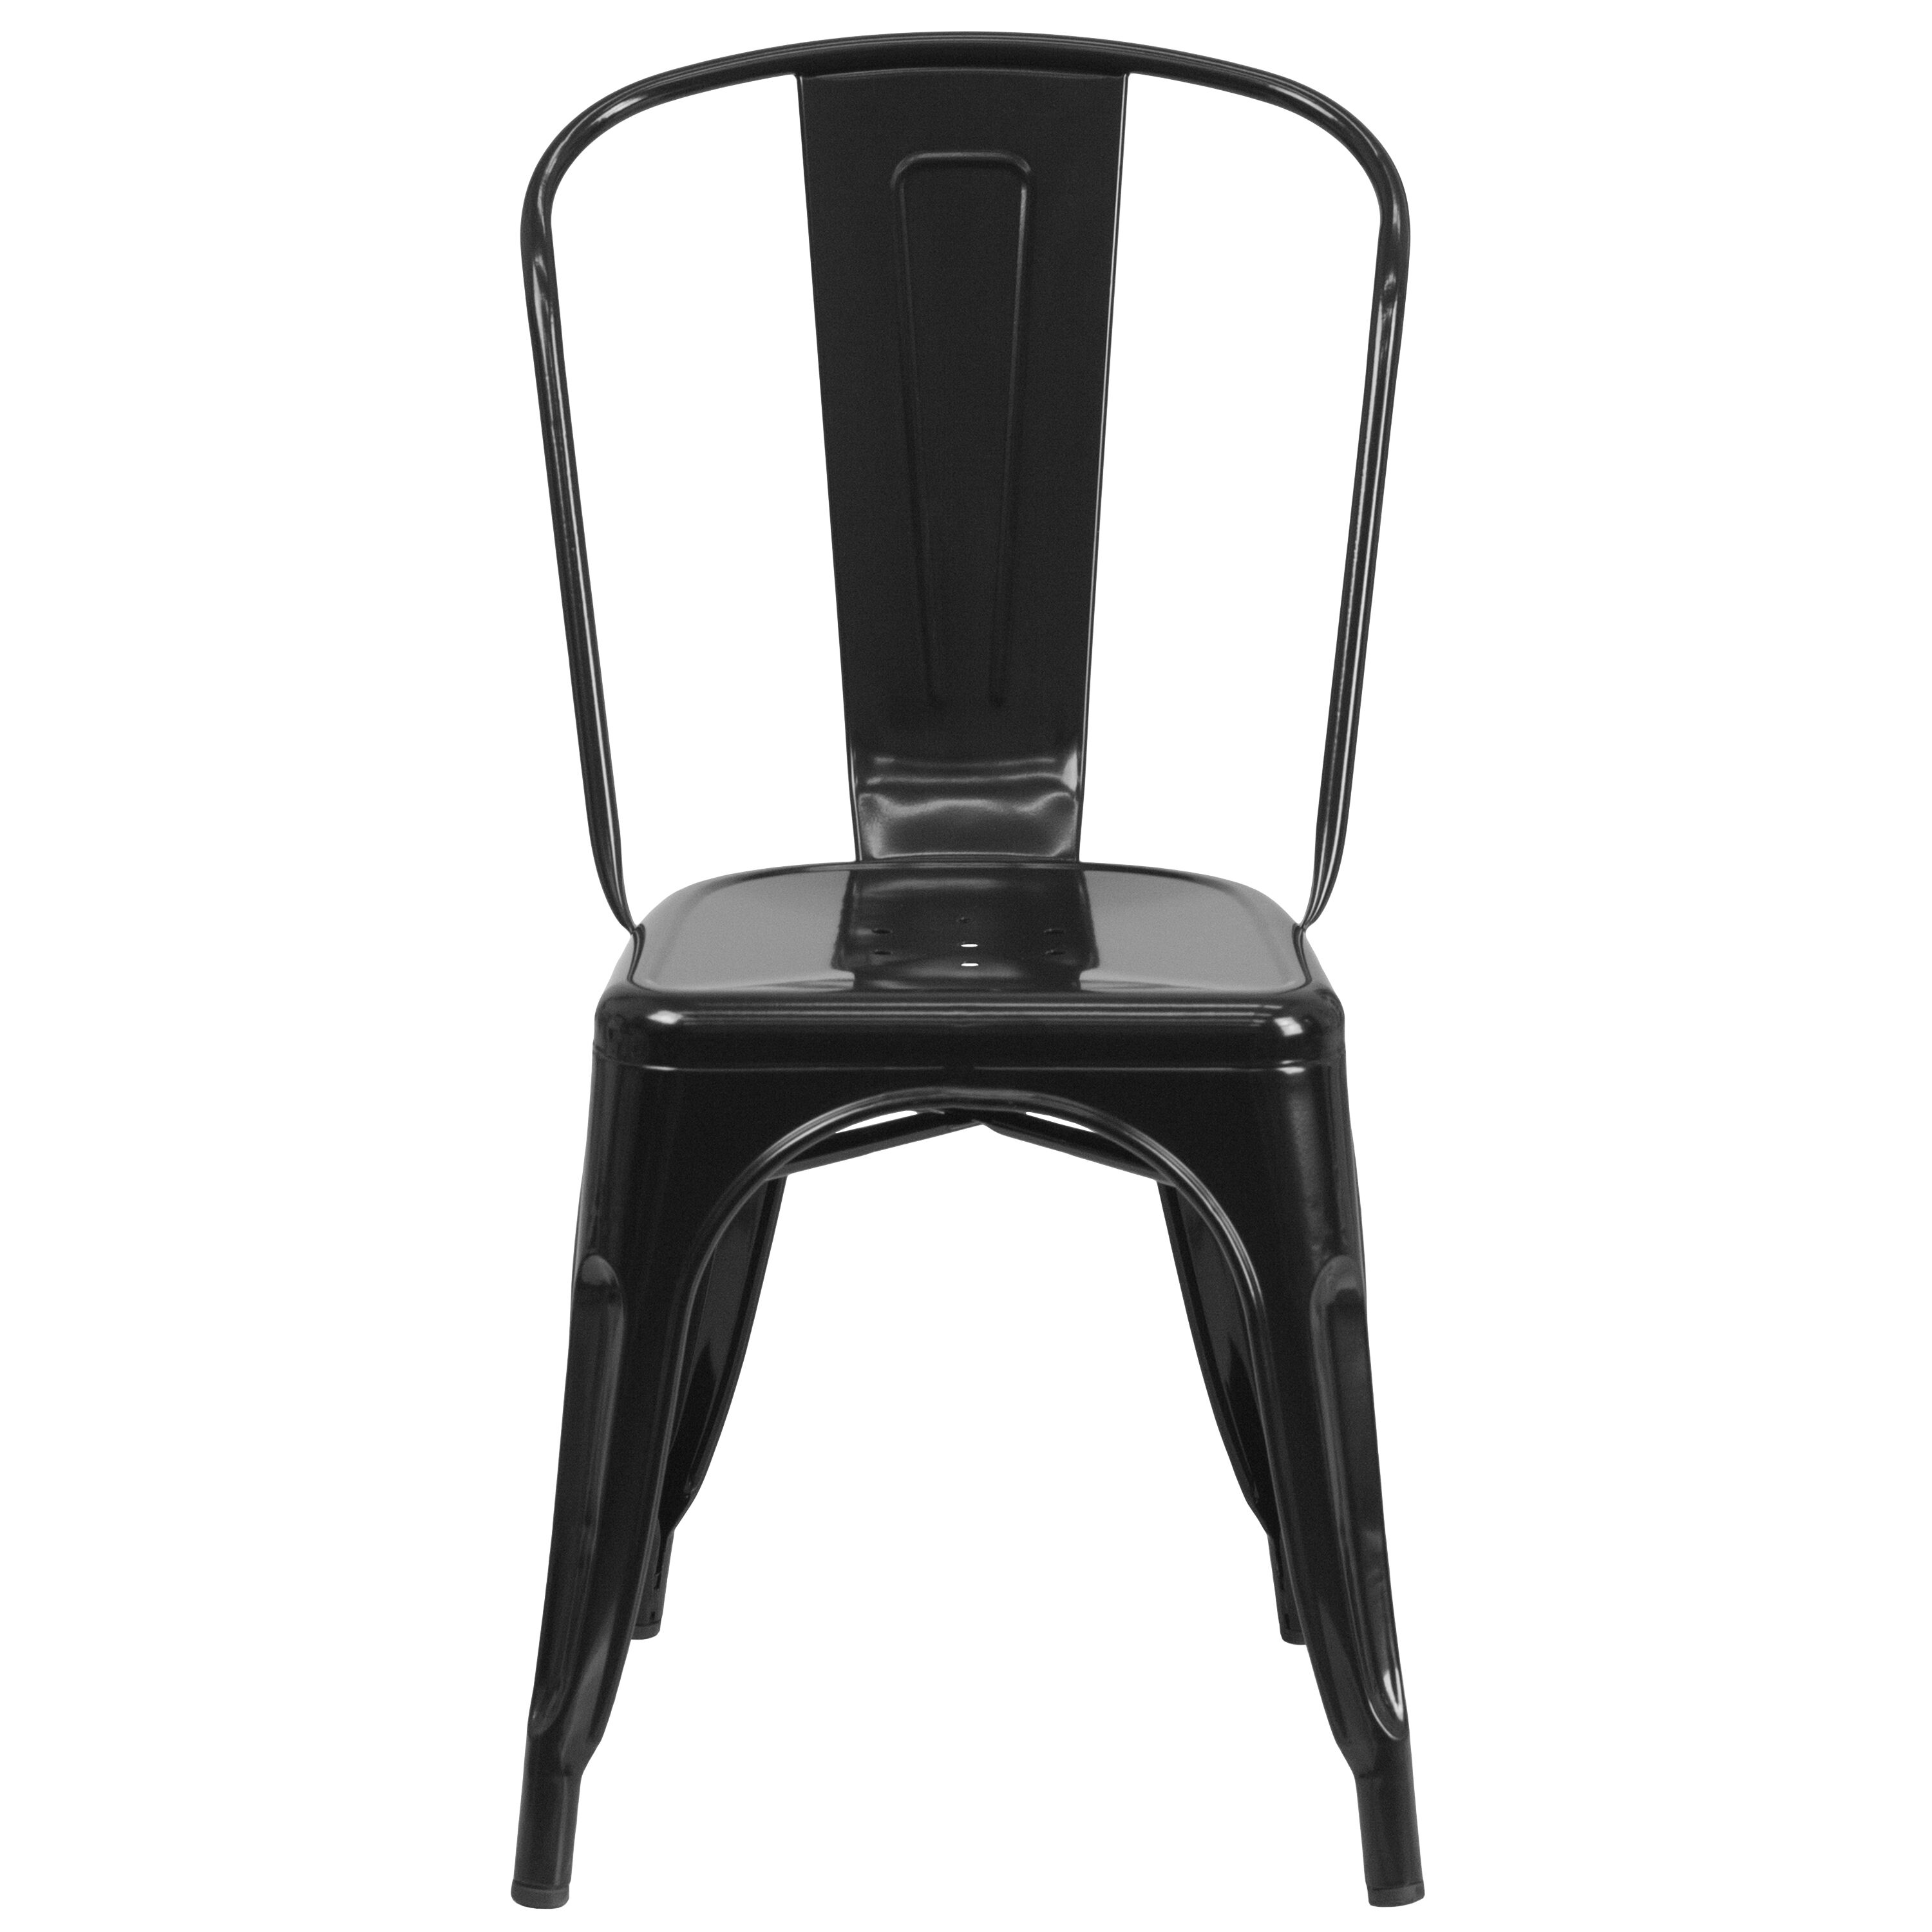 indoor outdoor chairs round kitchen table and walmart metal chair ch 31230 et 3534 our stackable is on sale now